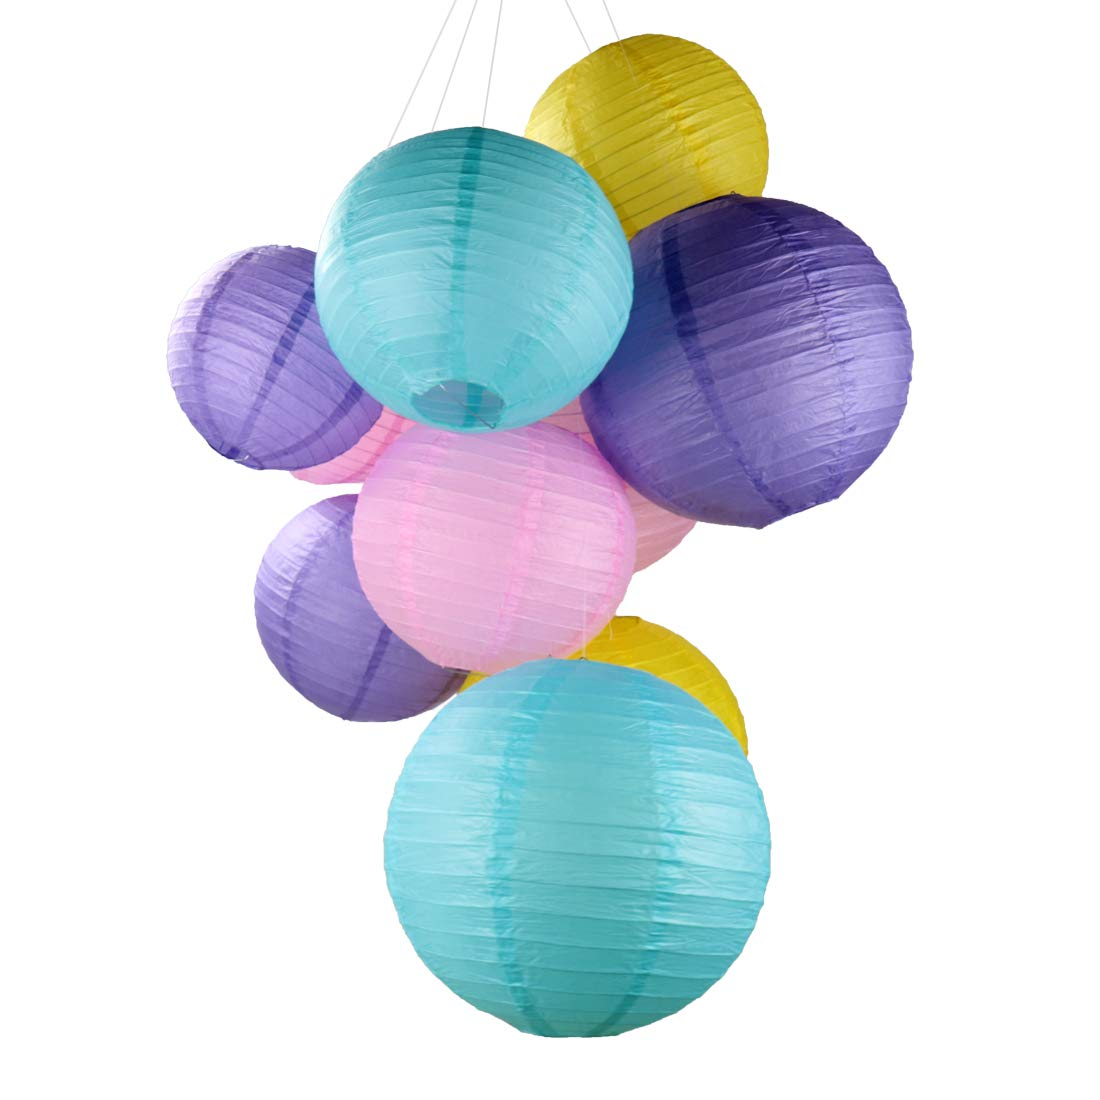 12 Packs Paper Lanterns with Assorted Sizes Macarone Cute DIY Paper Lantern for Kids and Girls Birthday Party Festival Charm